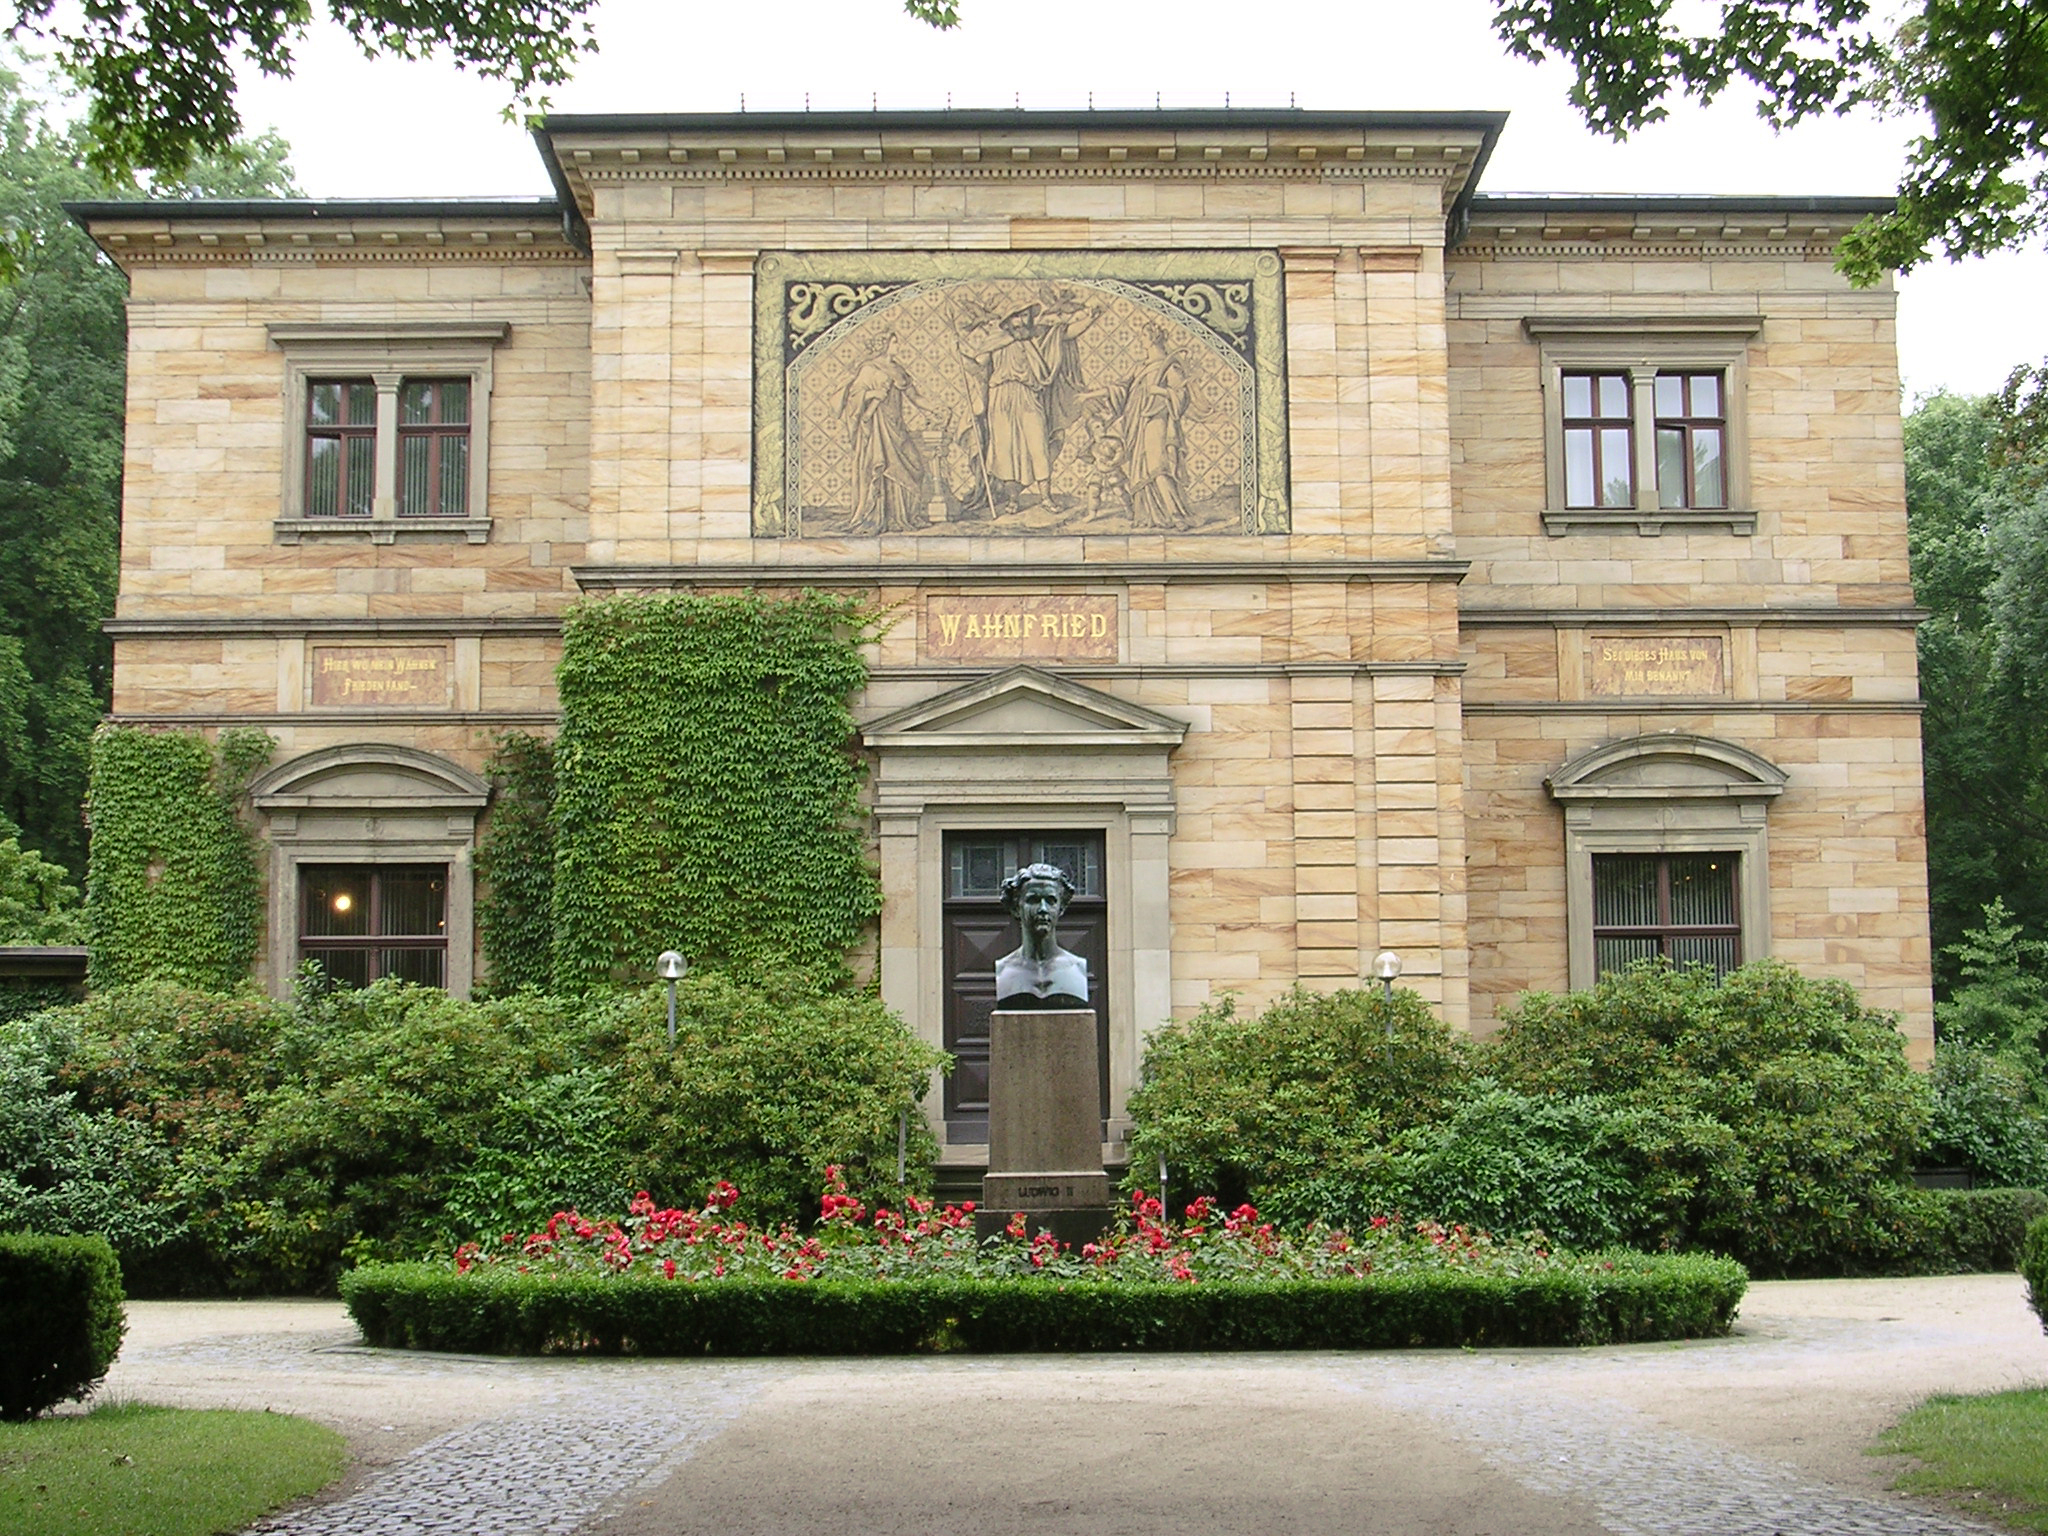 Haus Wahnfried, Foto: Richard Wagner Museum Bayreuth